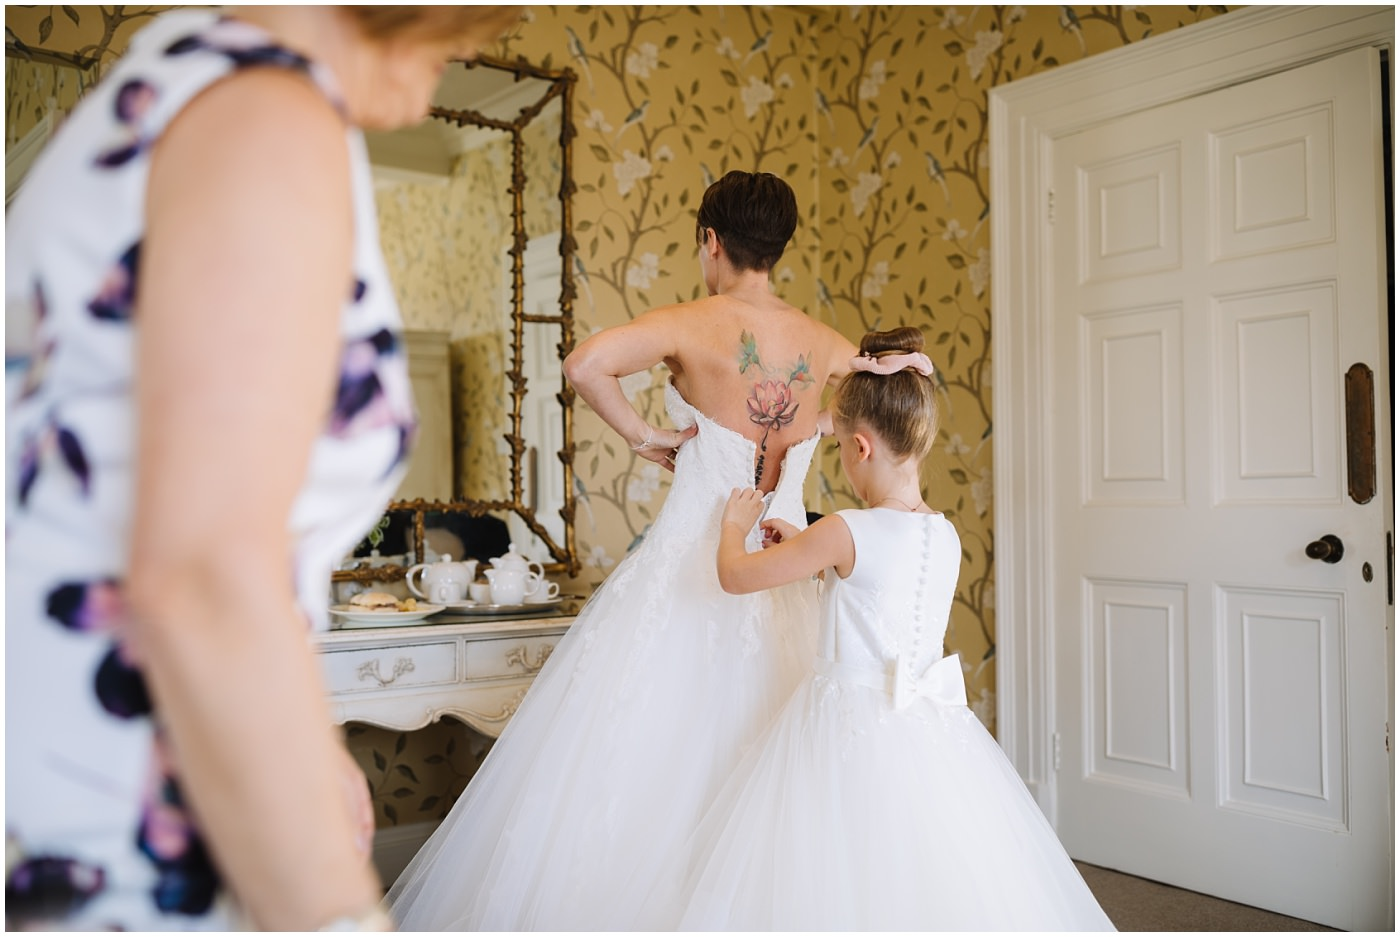 Brides daughter assists with wedding dress at eaves hall